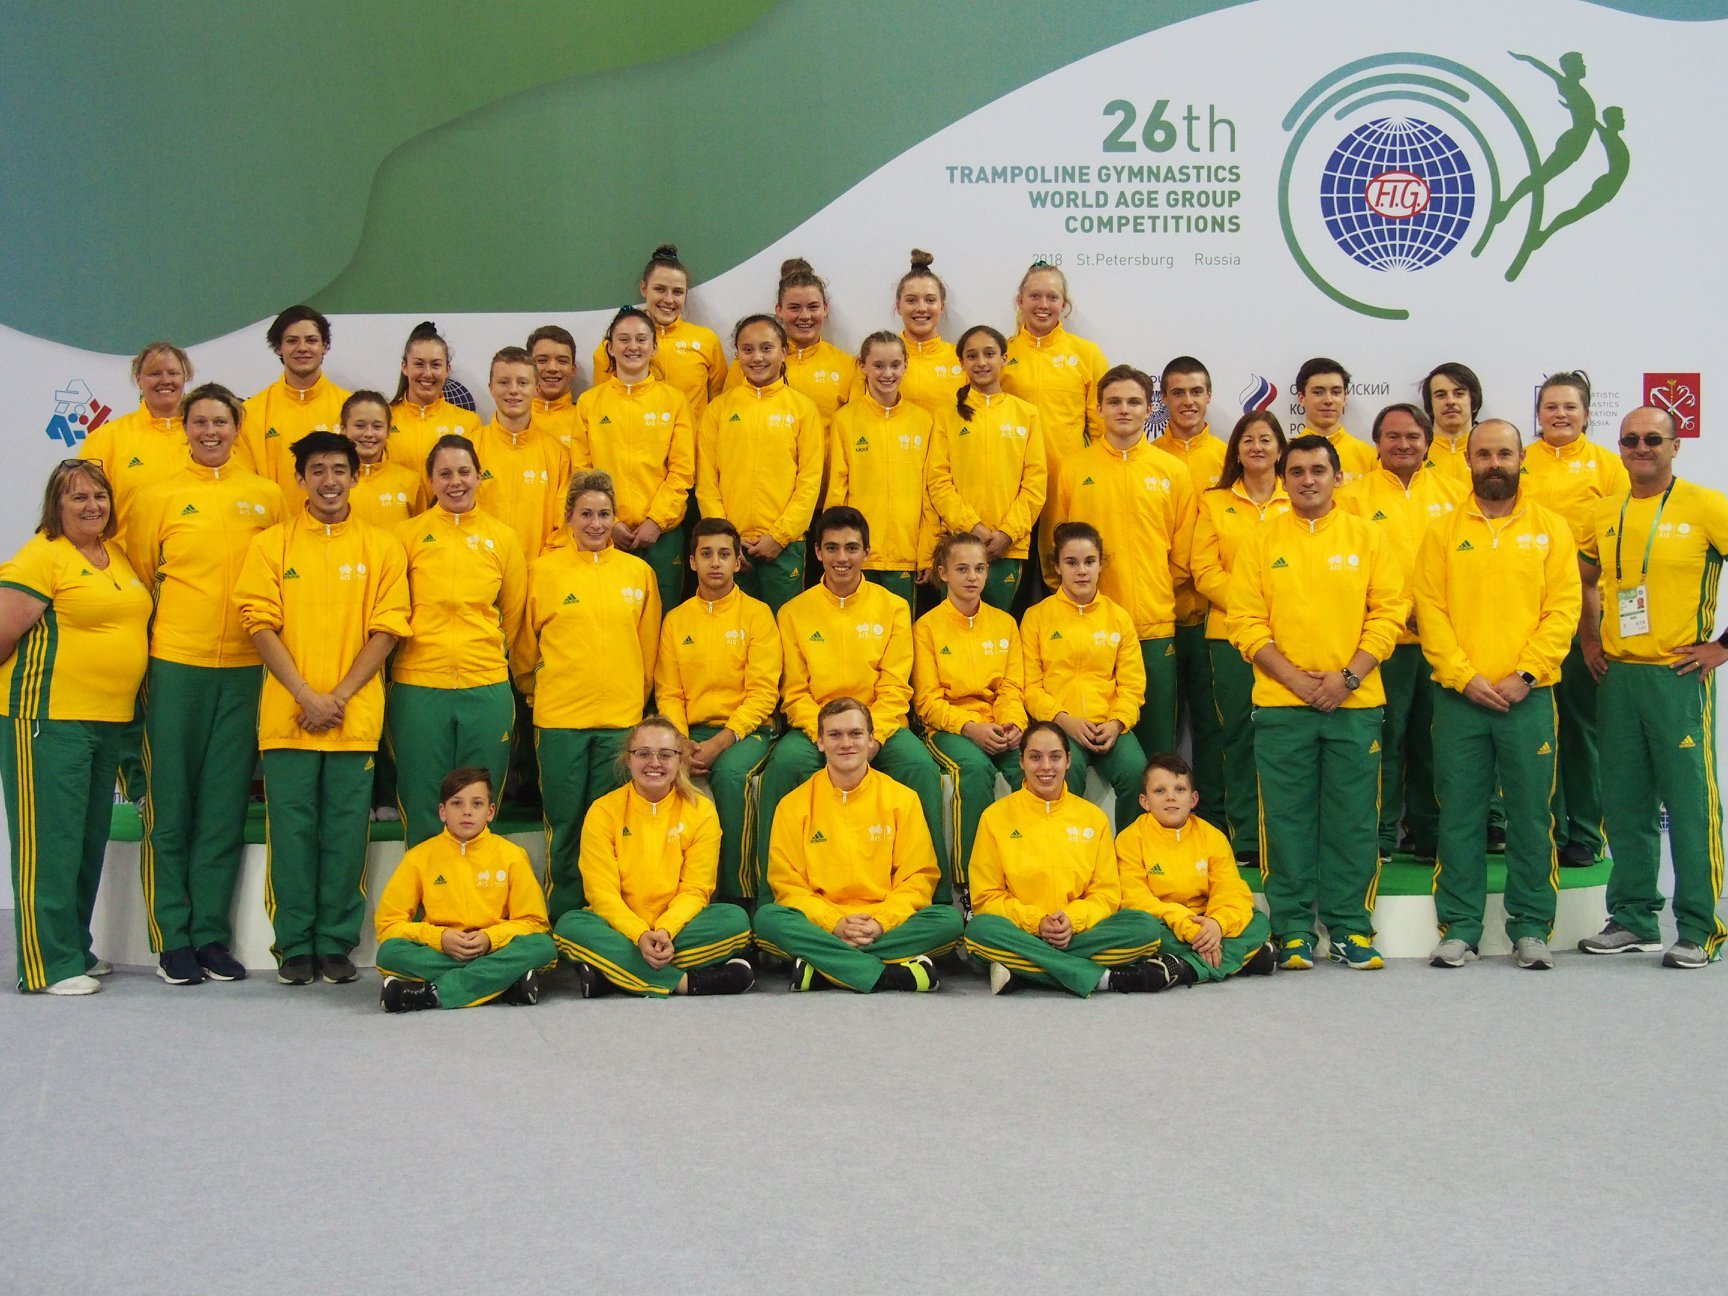 2018 World Age Games Australian Trampoline Gymnastics Team